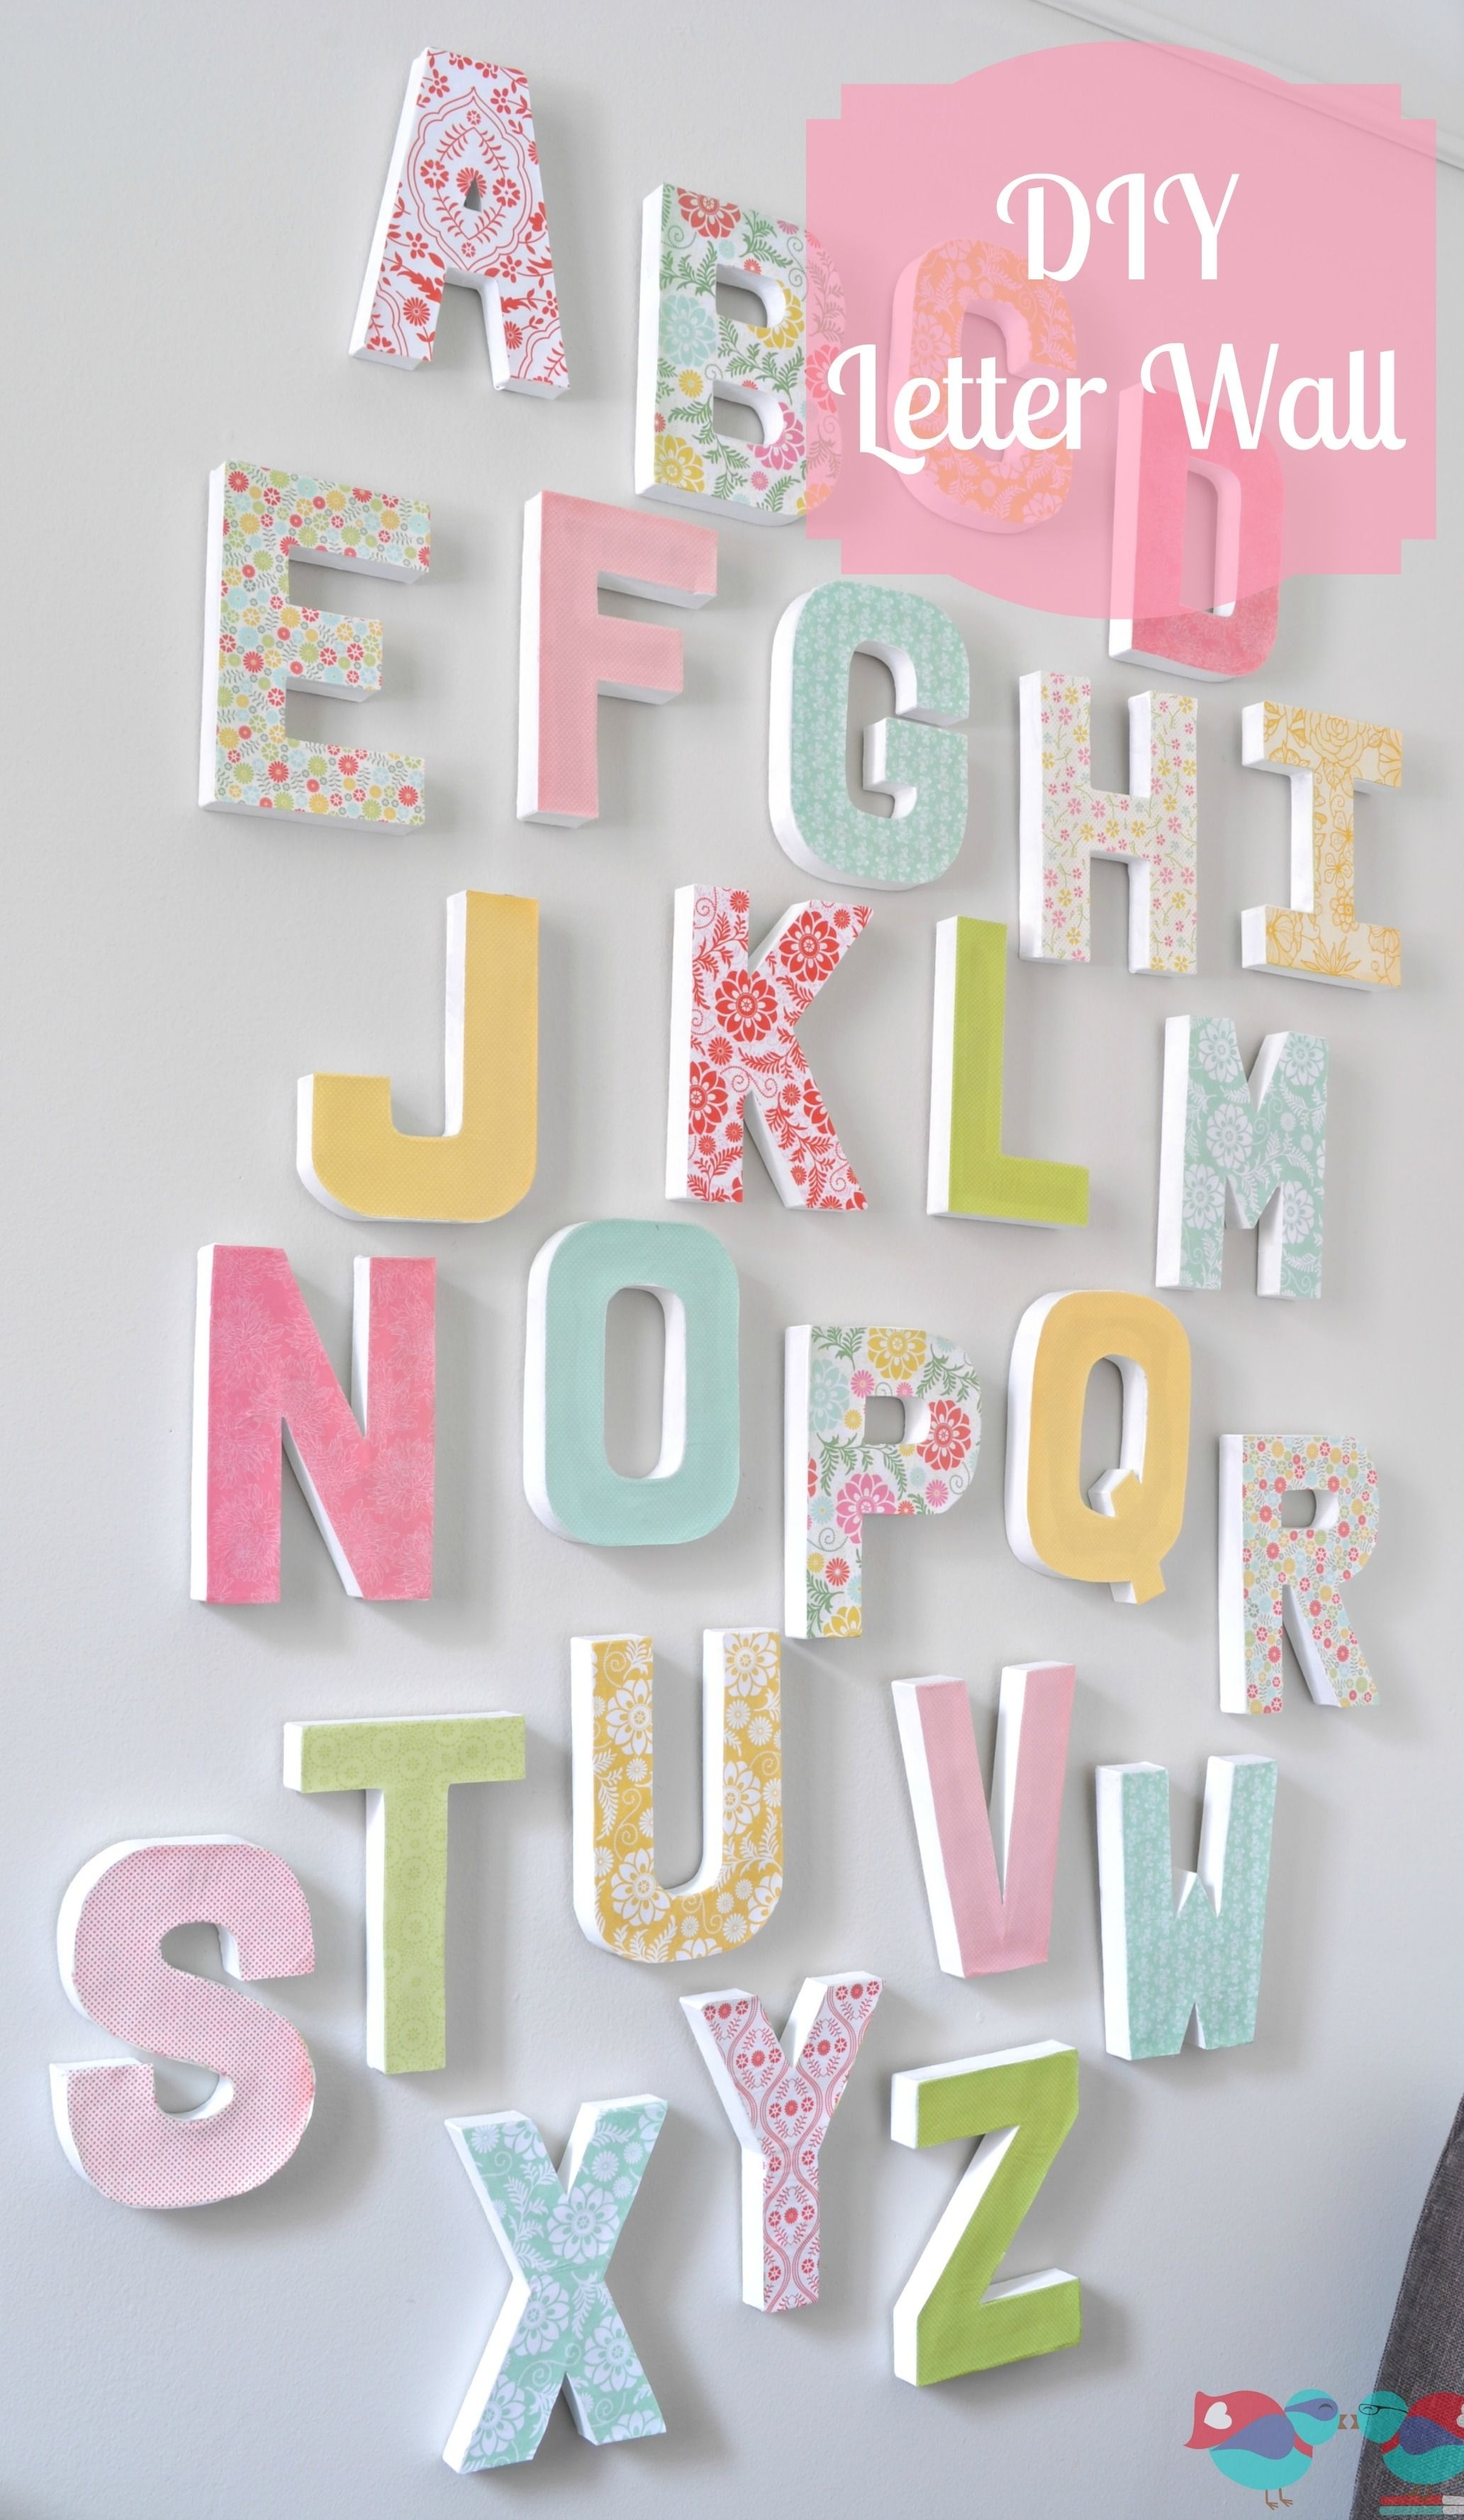 Diy Letter Wall Decor | Craft With Joann | Pinterest | Diy Letters pertaining to Most Popular Letter Wall Art